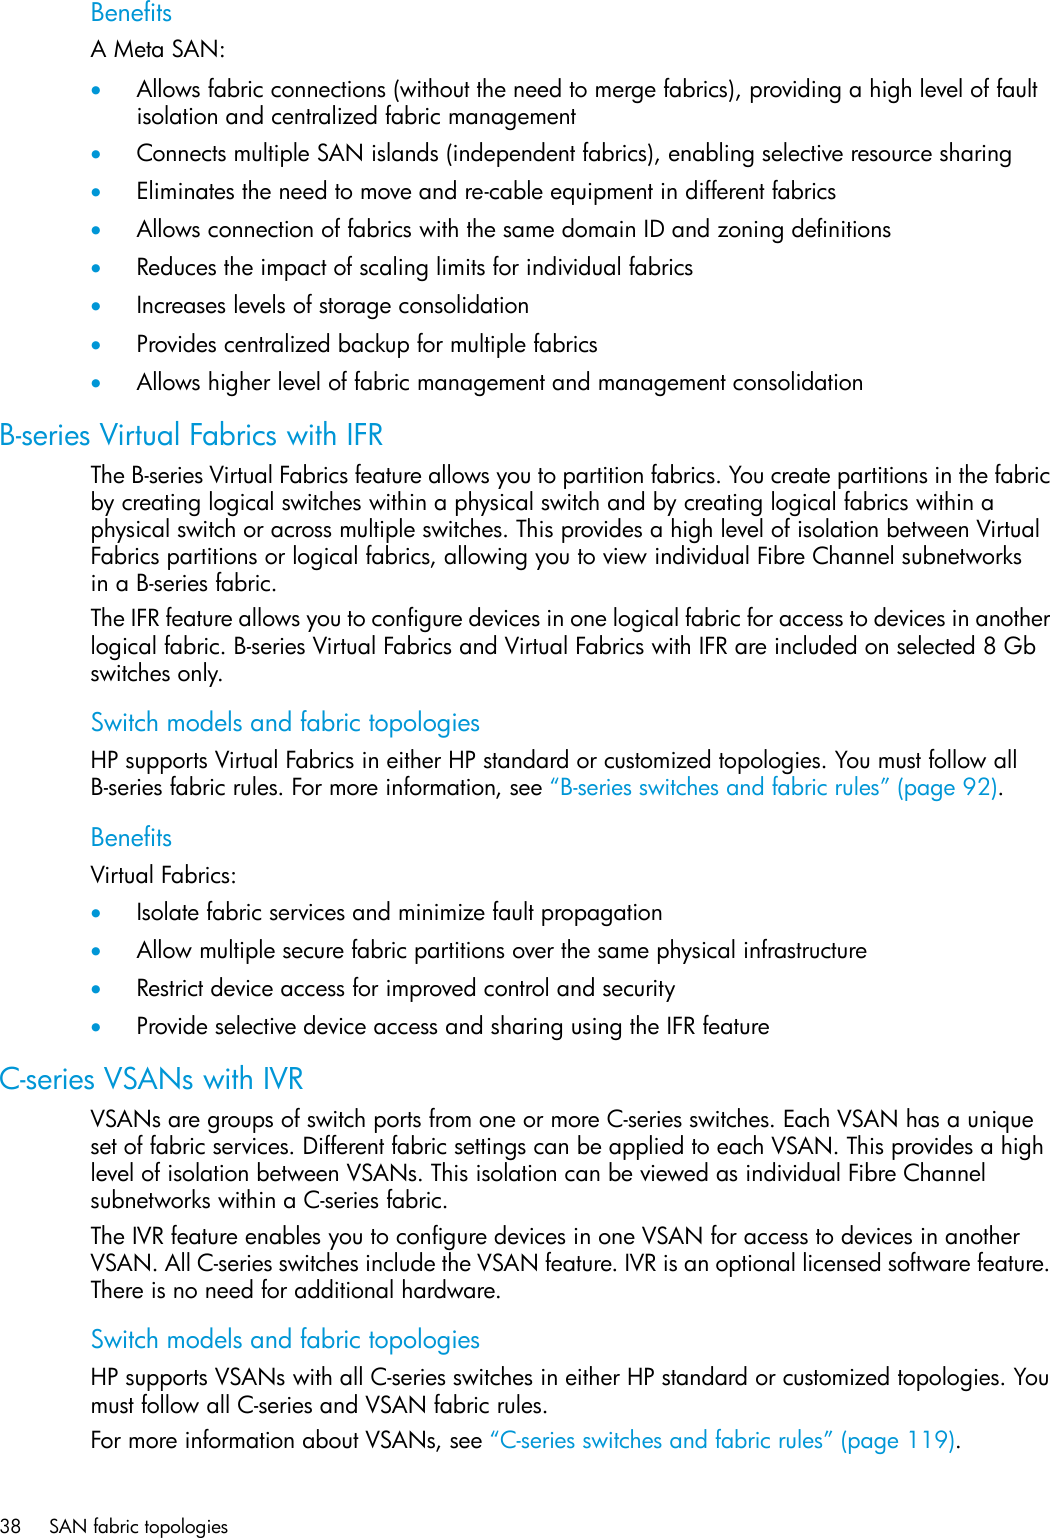 Hp B Series Remote Replication Solutions Reference Guide SAN